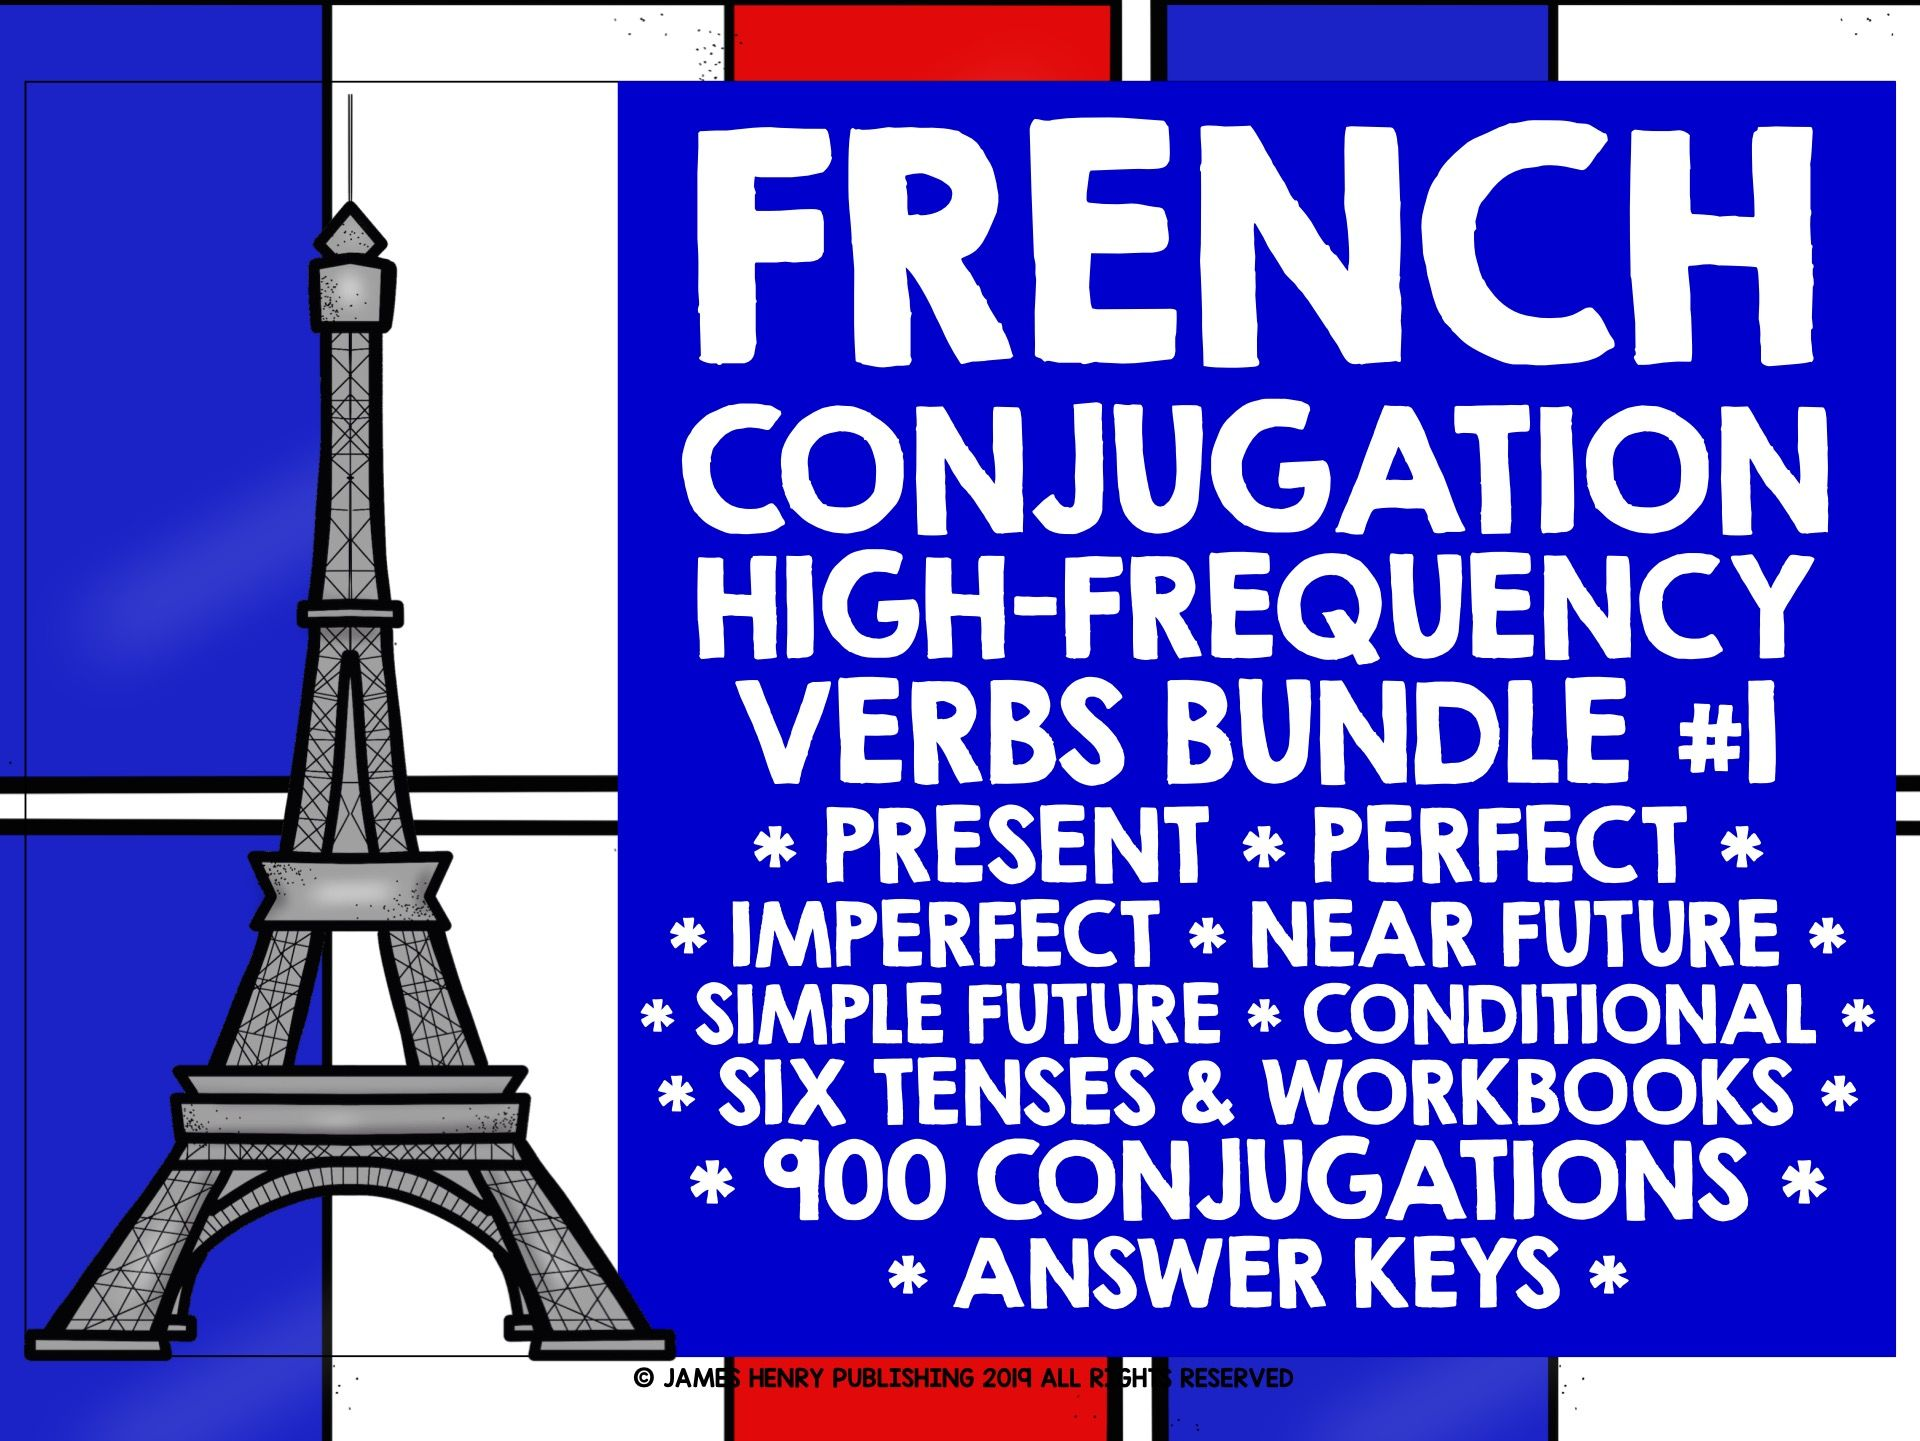 FRENCH HIGH-FREQUENCY VERBS BUNDLE 1